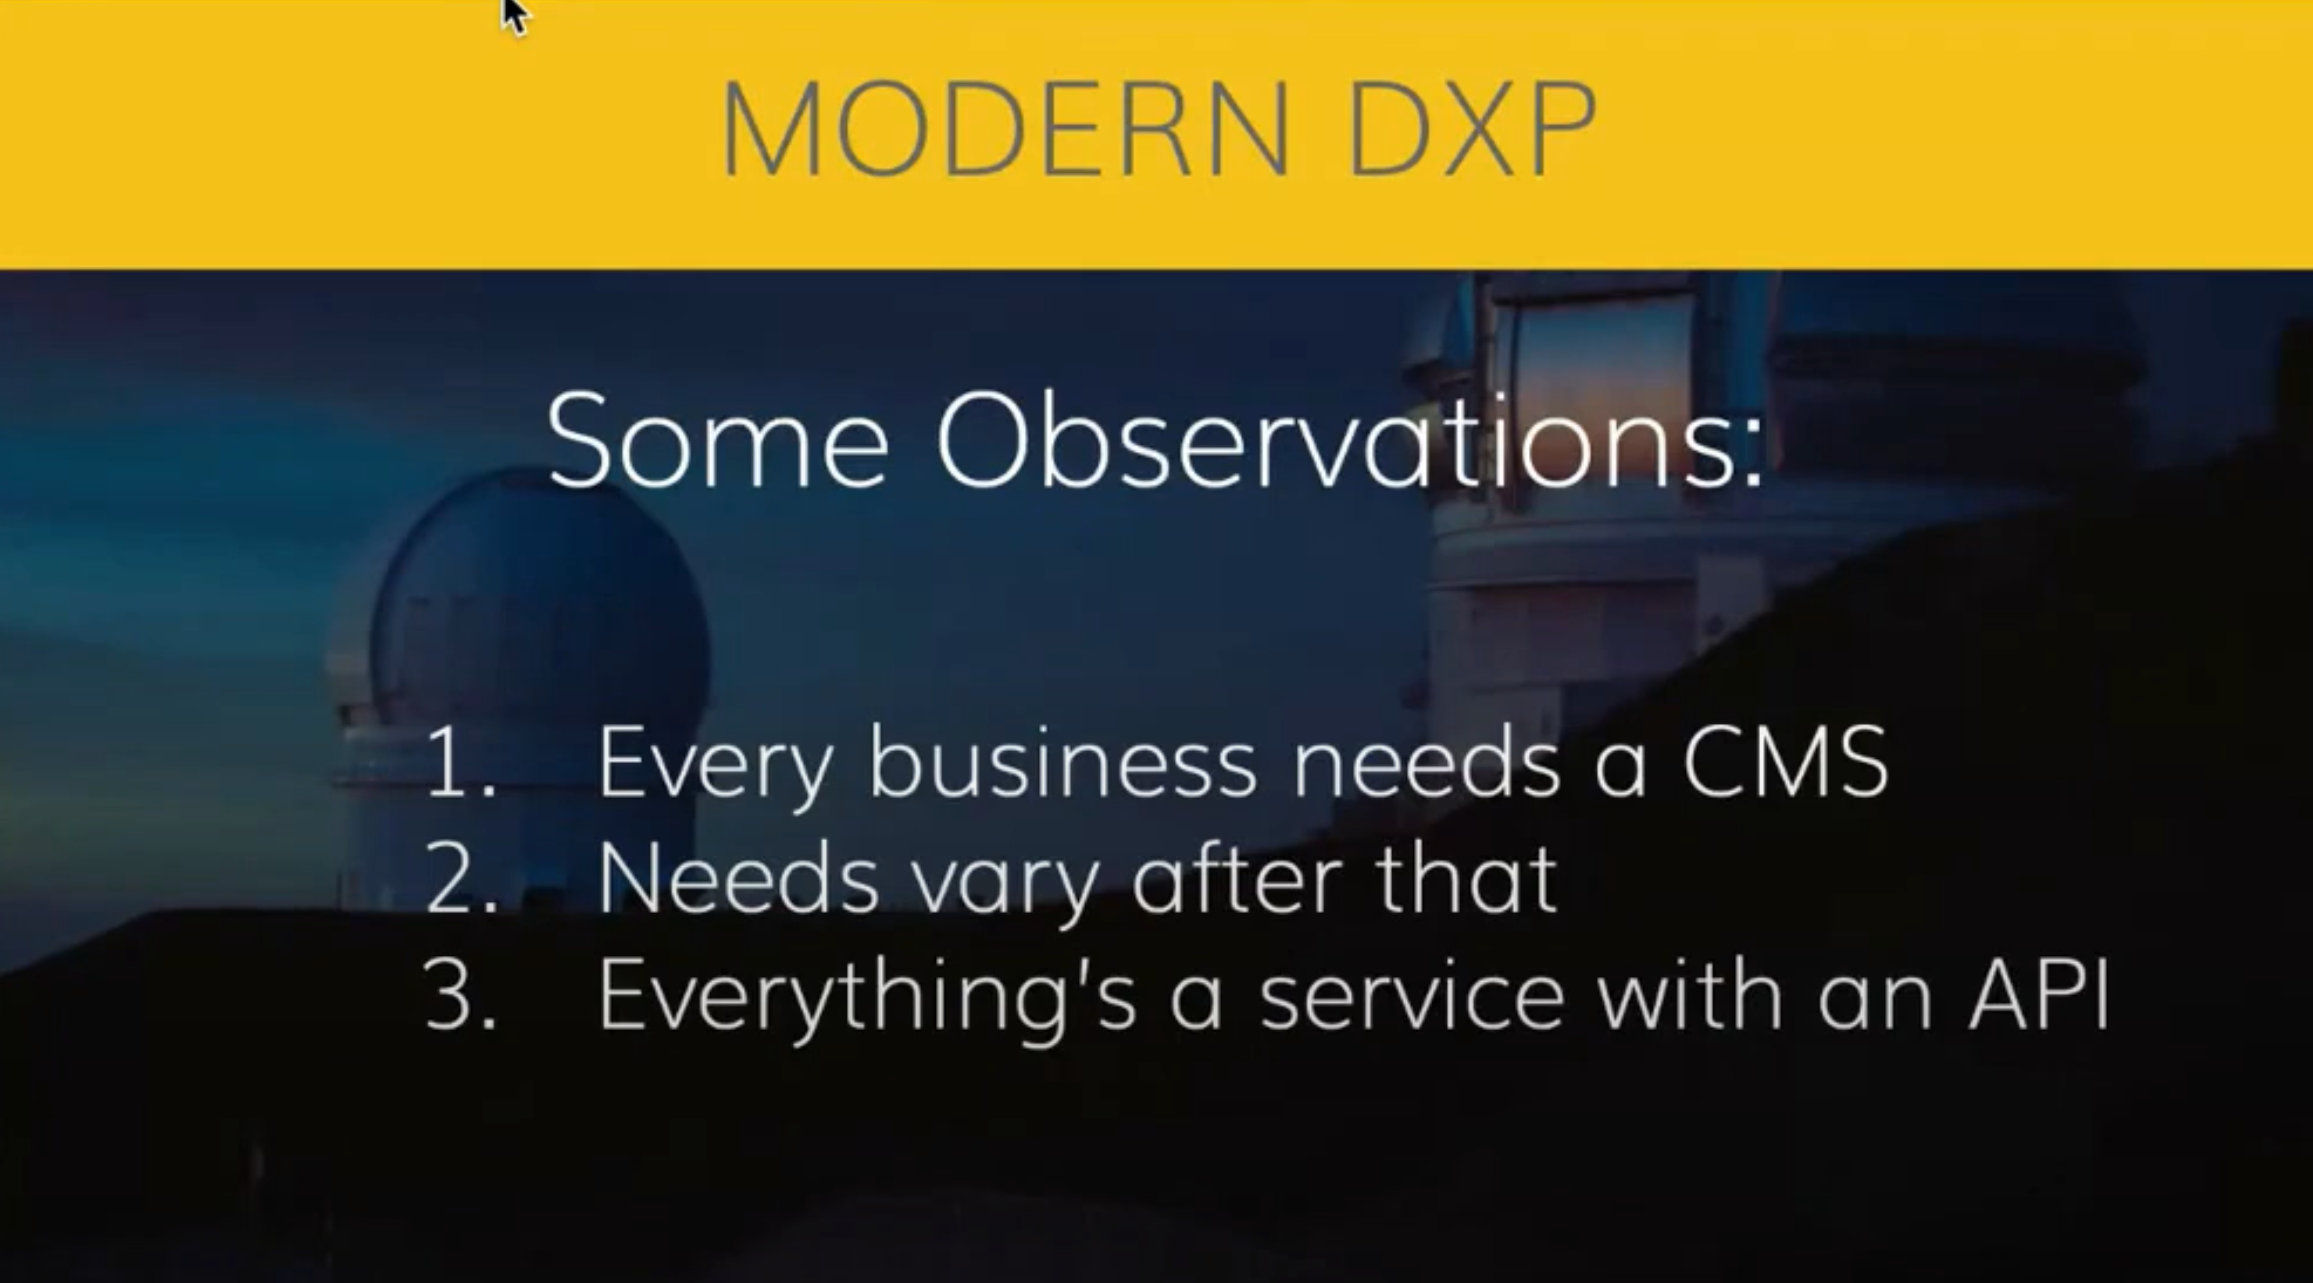 moderns dxp observations from agility cms